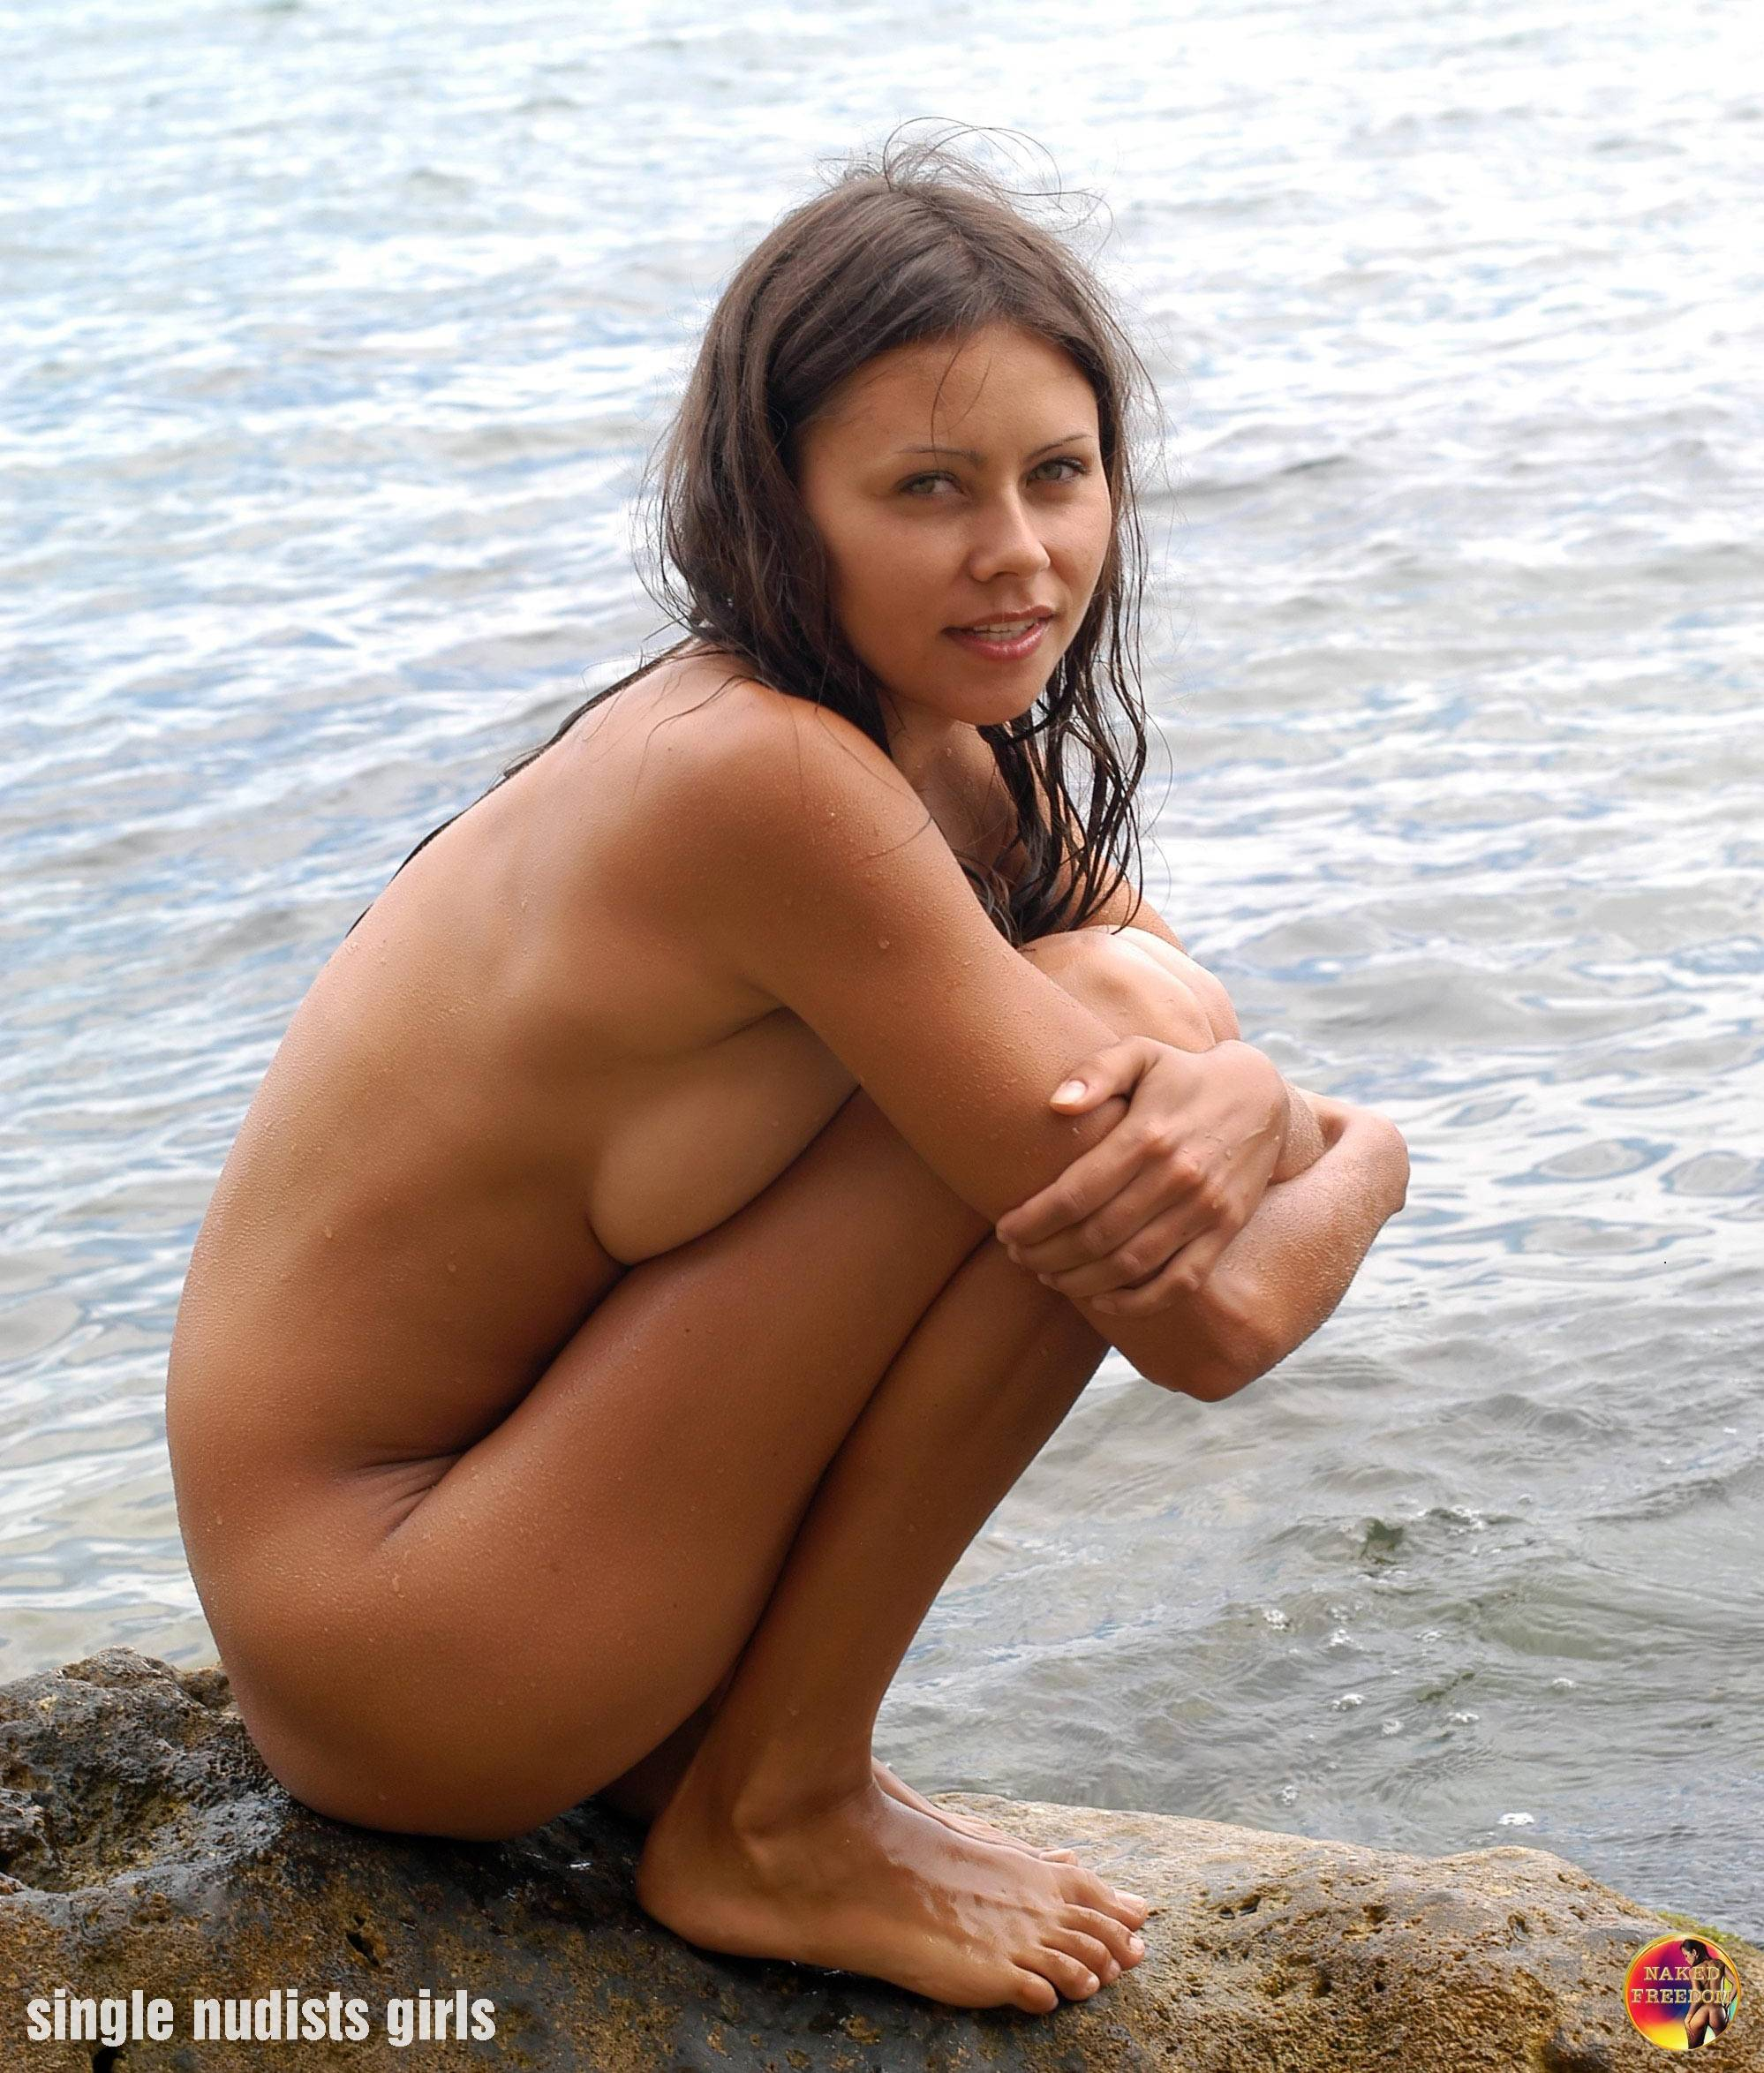 Nudist Pics Photos of Young Nudists-Young Girls Nudists Pictures - 2